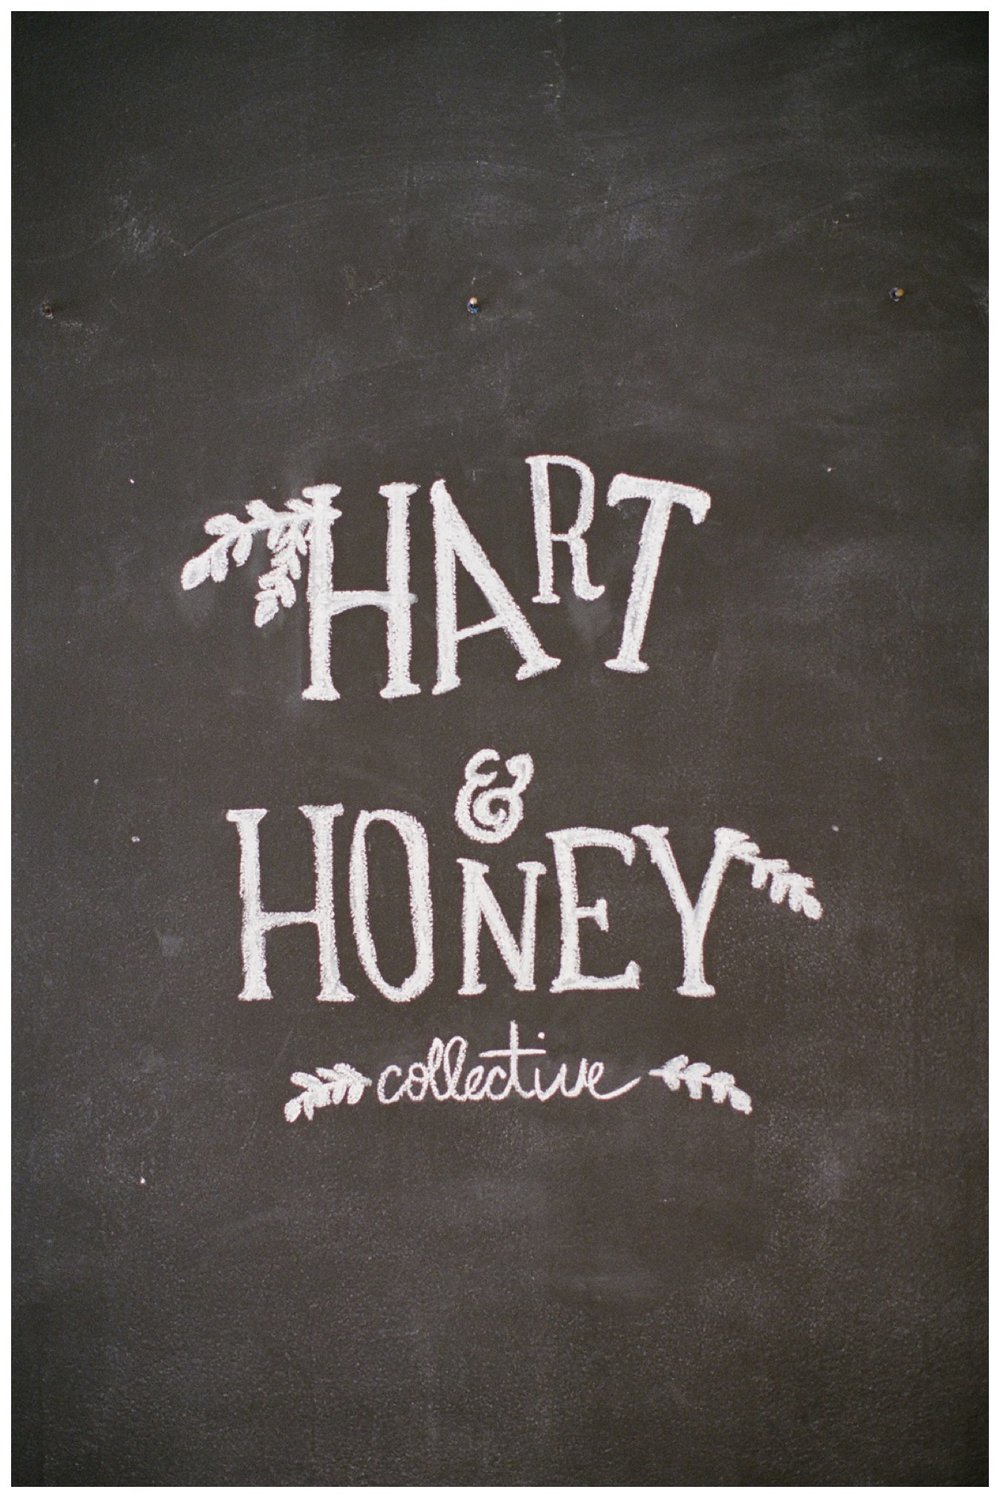 Hart and Honey Creative Collective Ashley Wilcox / graphic designer,  Lily Glass / photographer Columbus Ohio